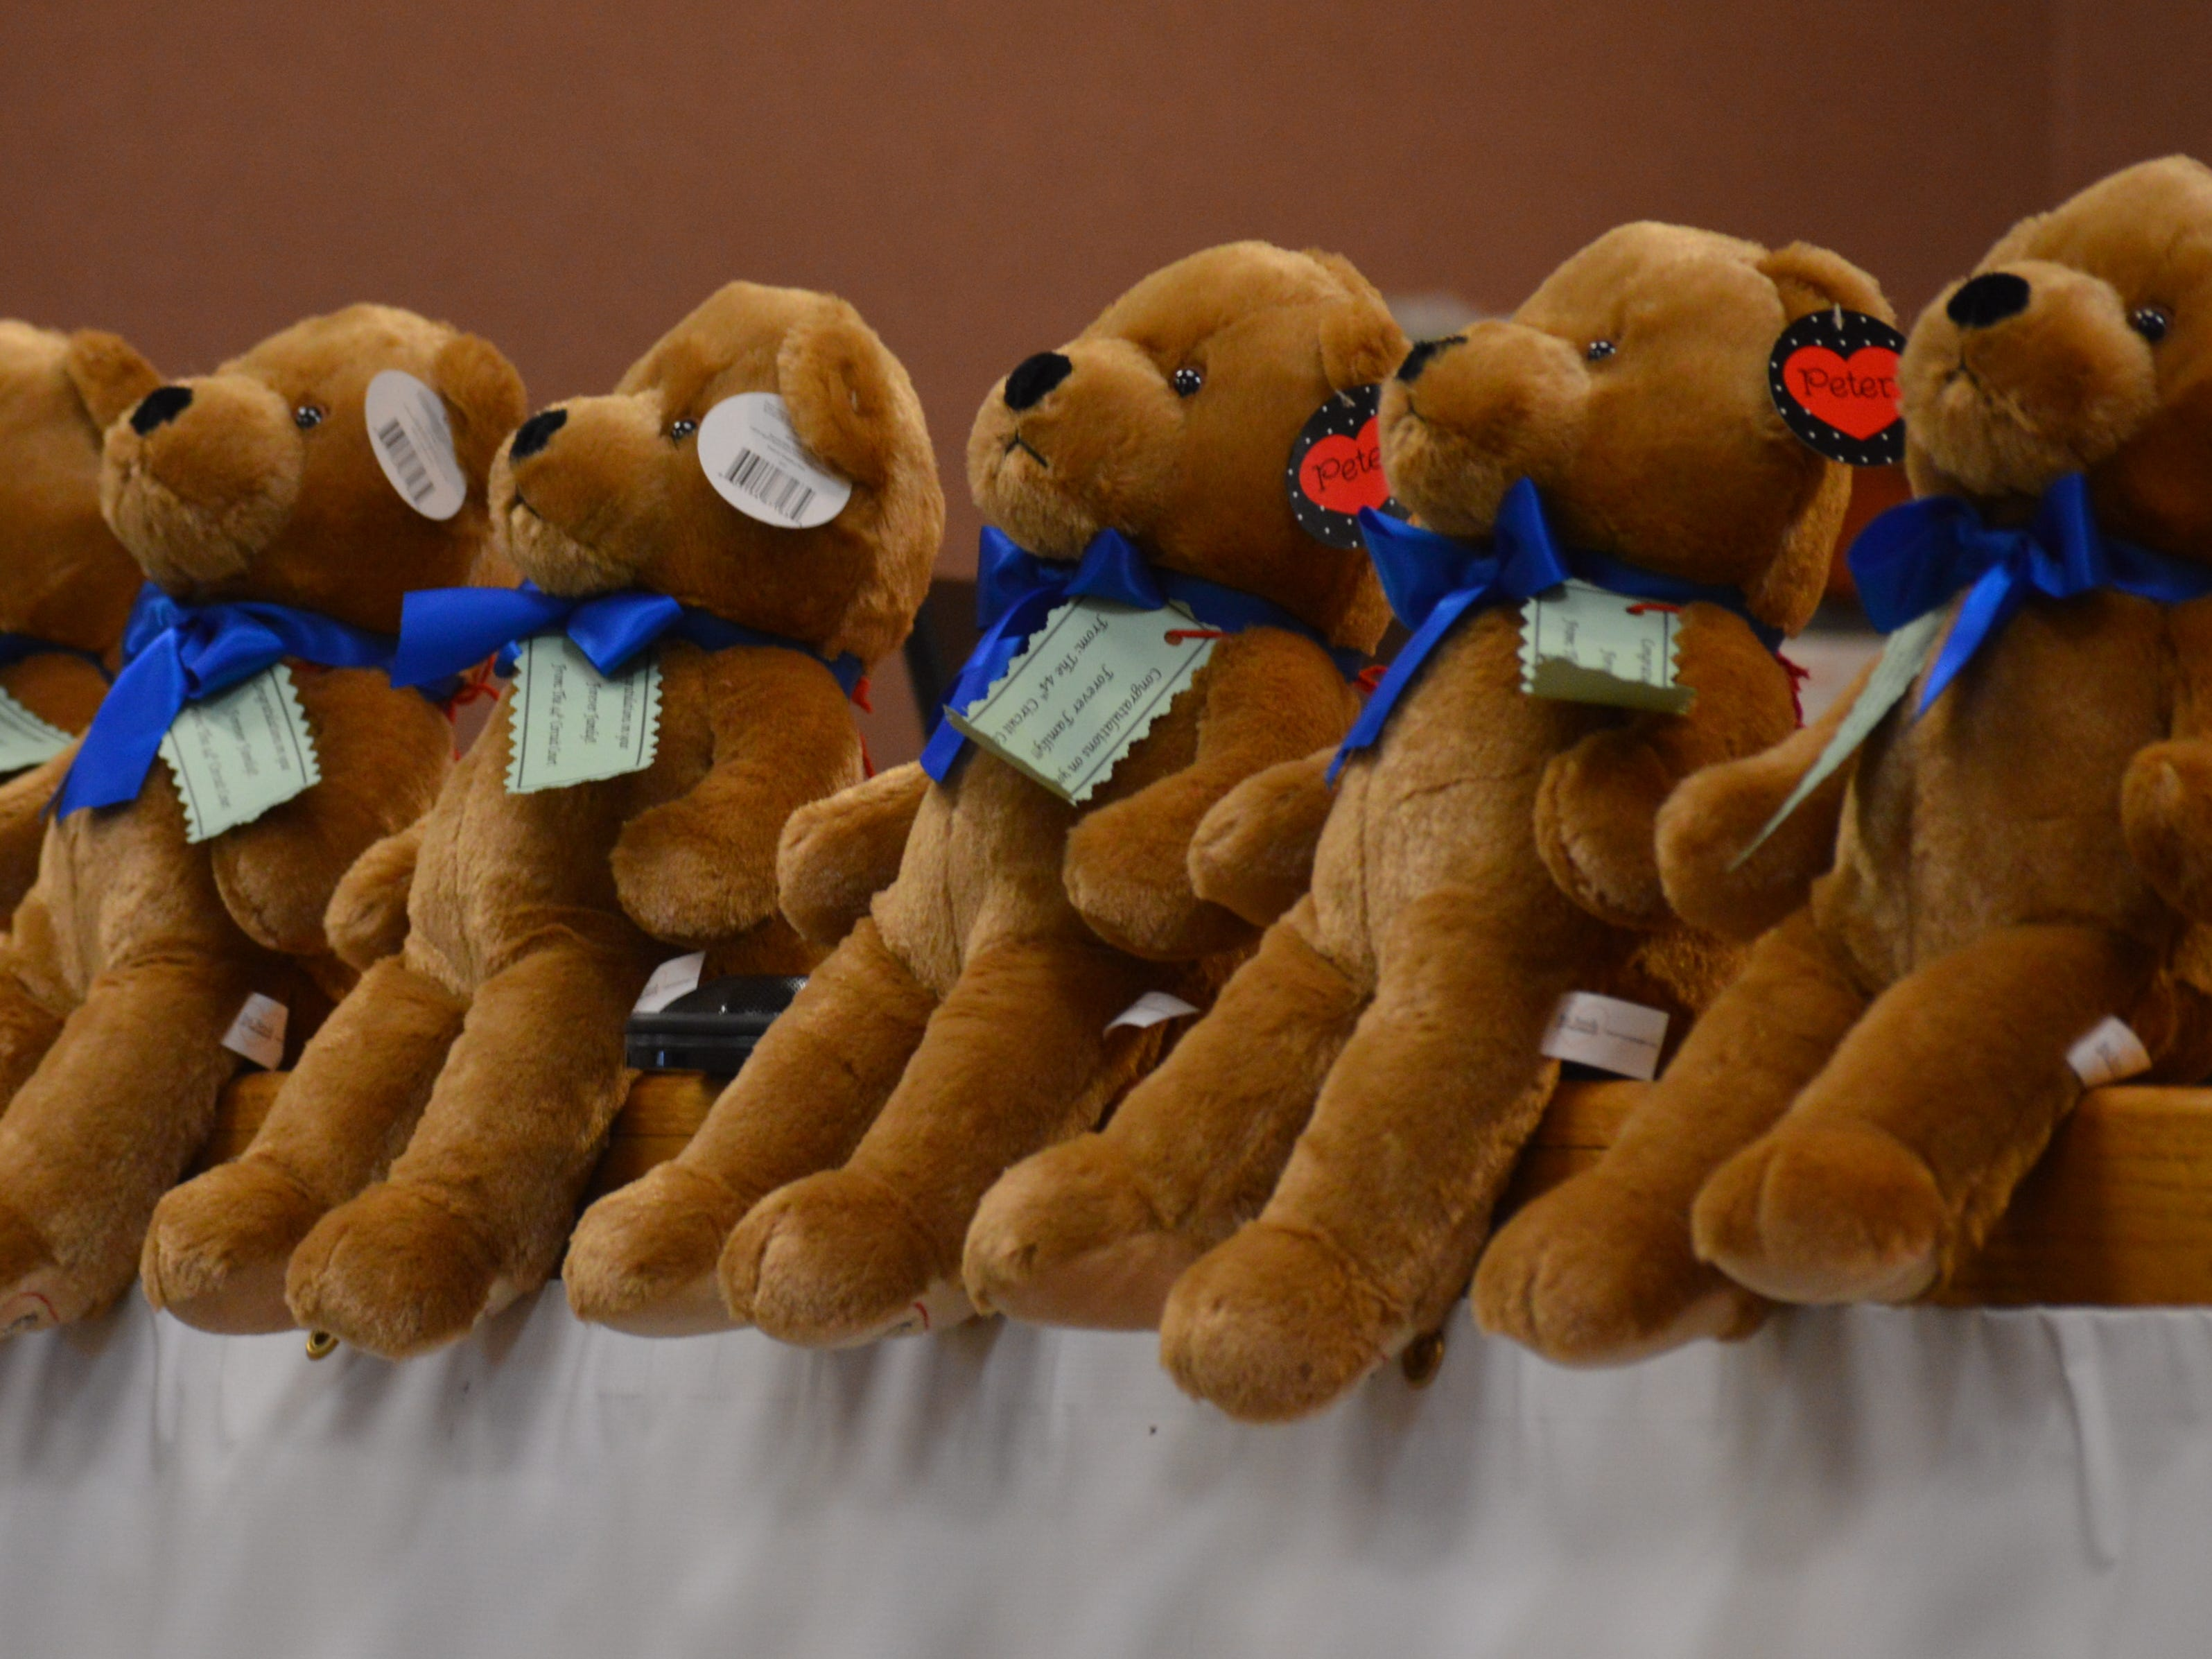 Stuffed bears lined the desk of Livingston County Chief Judge Miriam Cavanaugh on Tuesday Nov. 20, 2018.